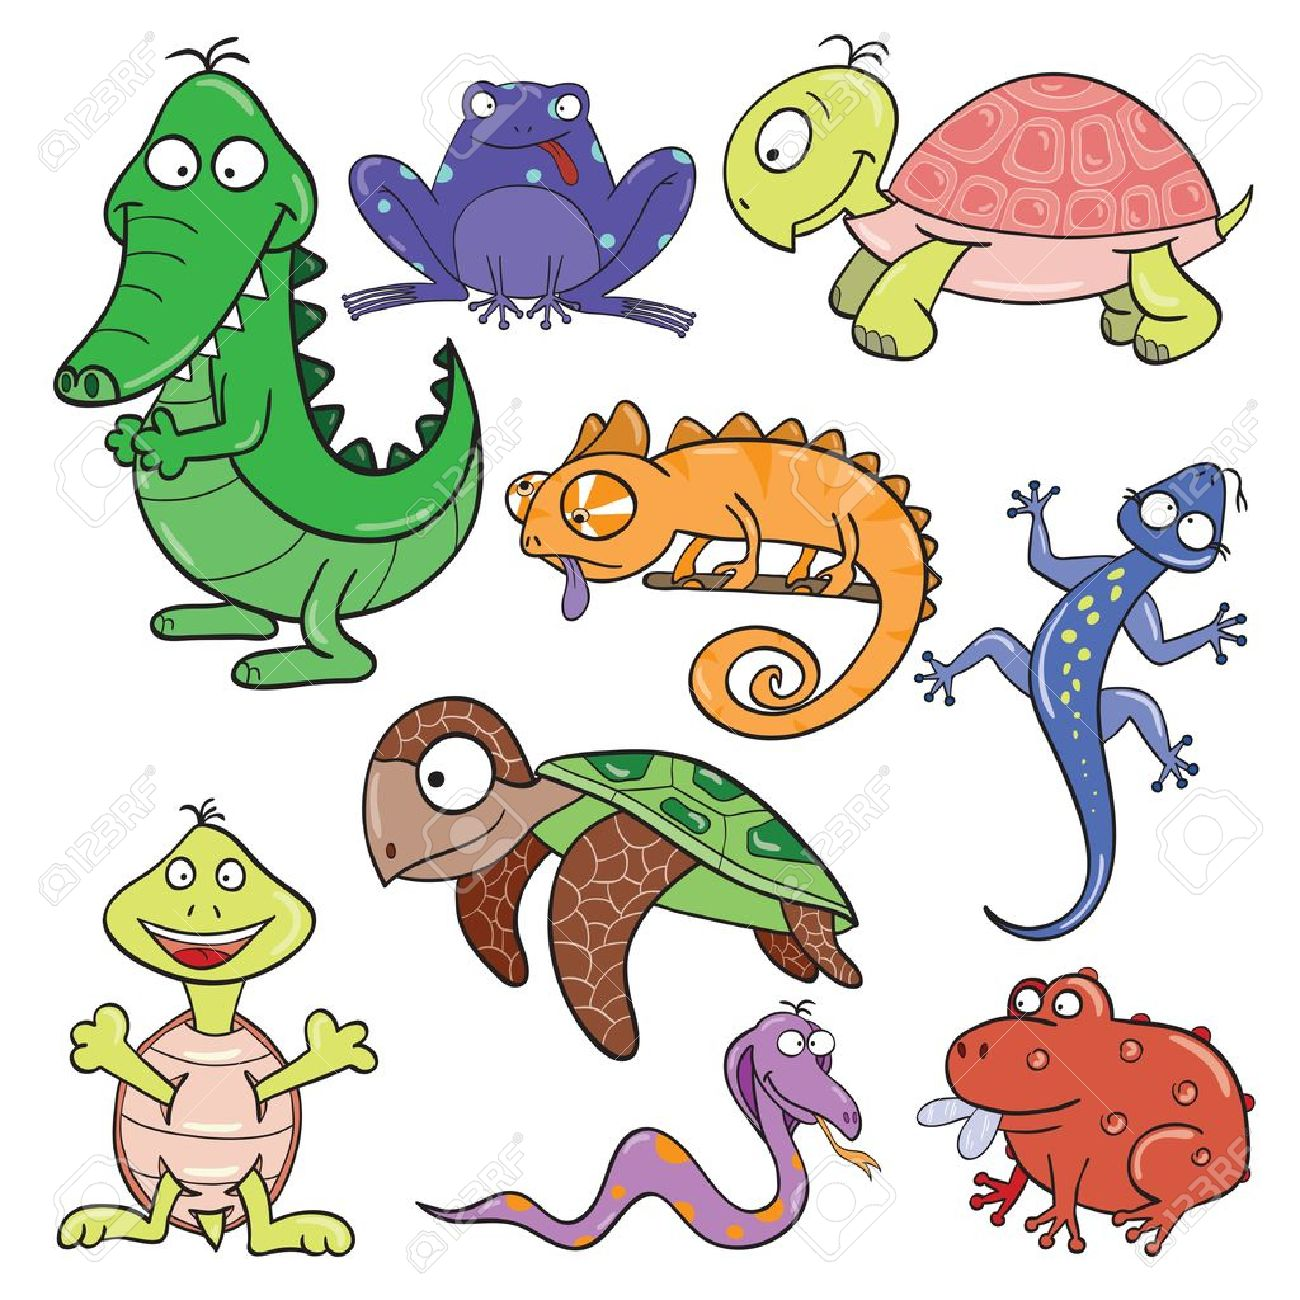 Amphibian clipart #11, Download drawings